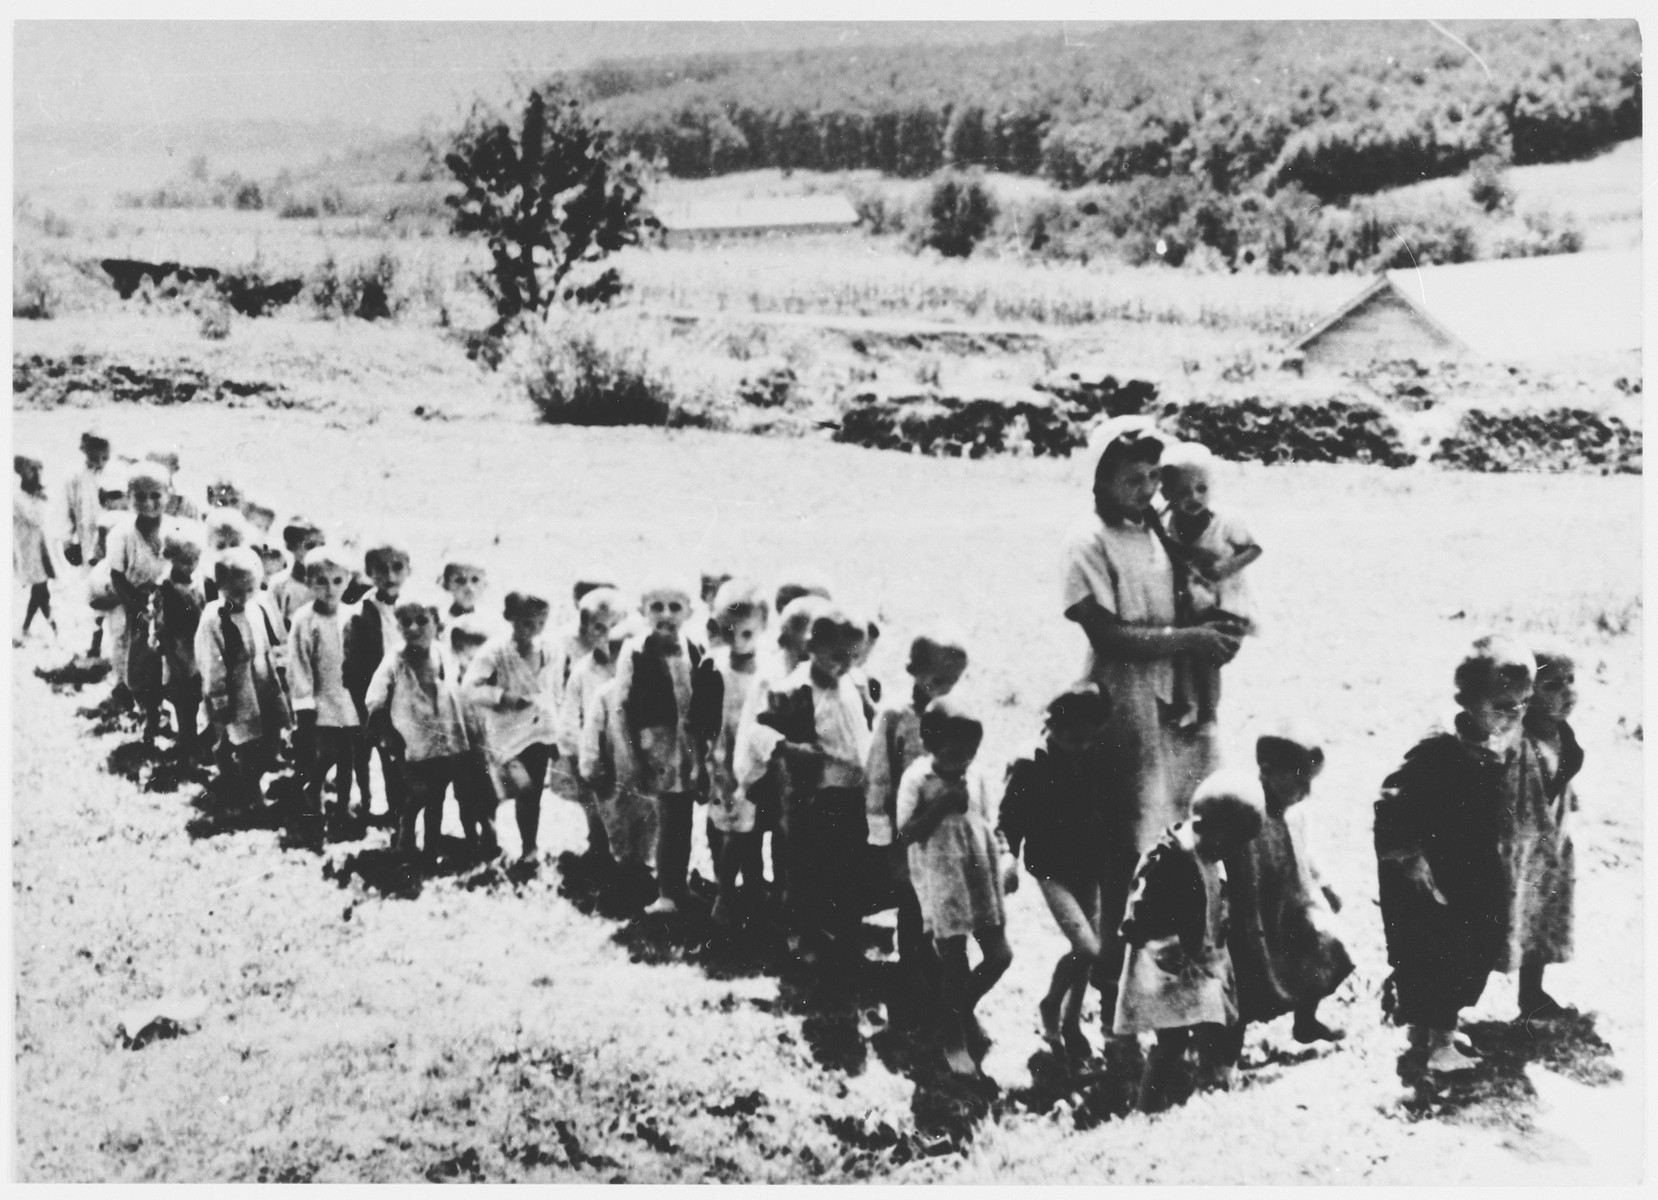 [Possibly a group of Serbian children being marched to a concentration camp].